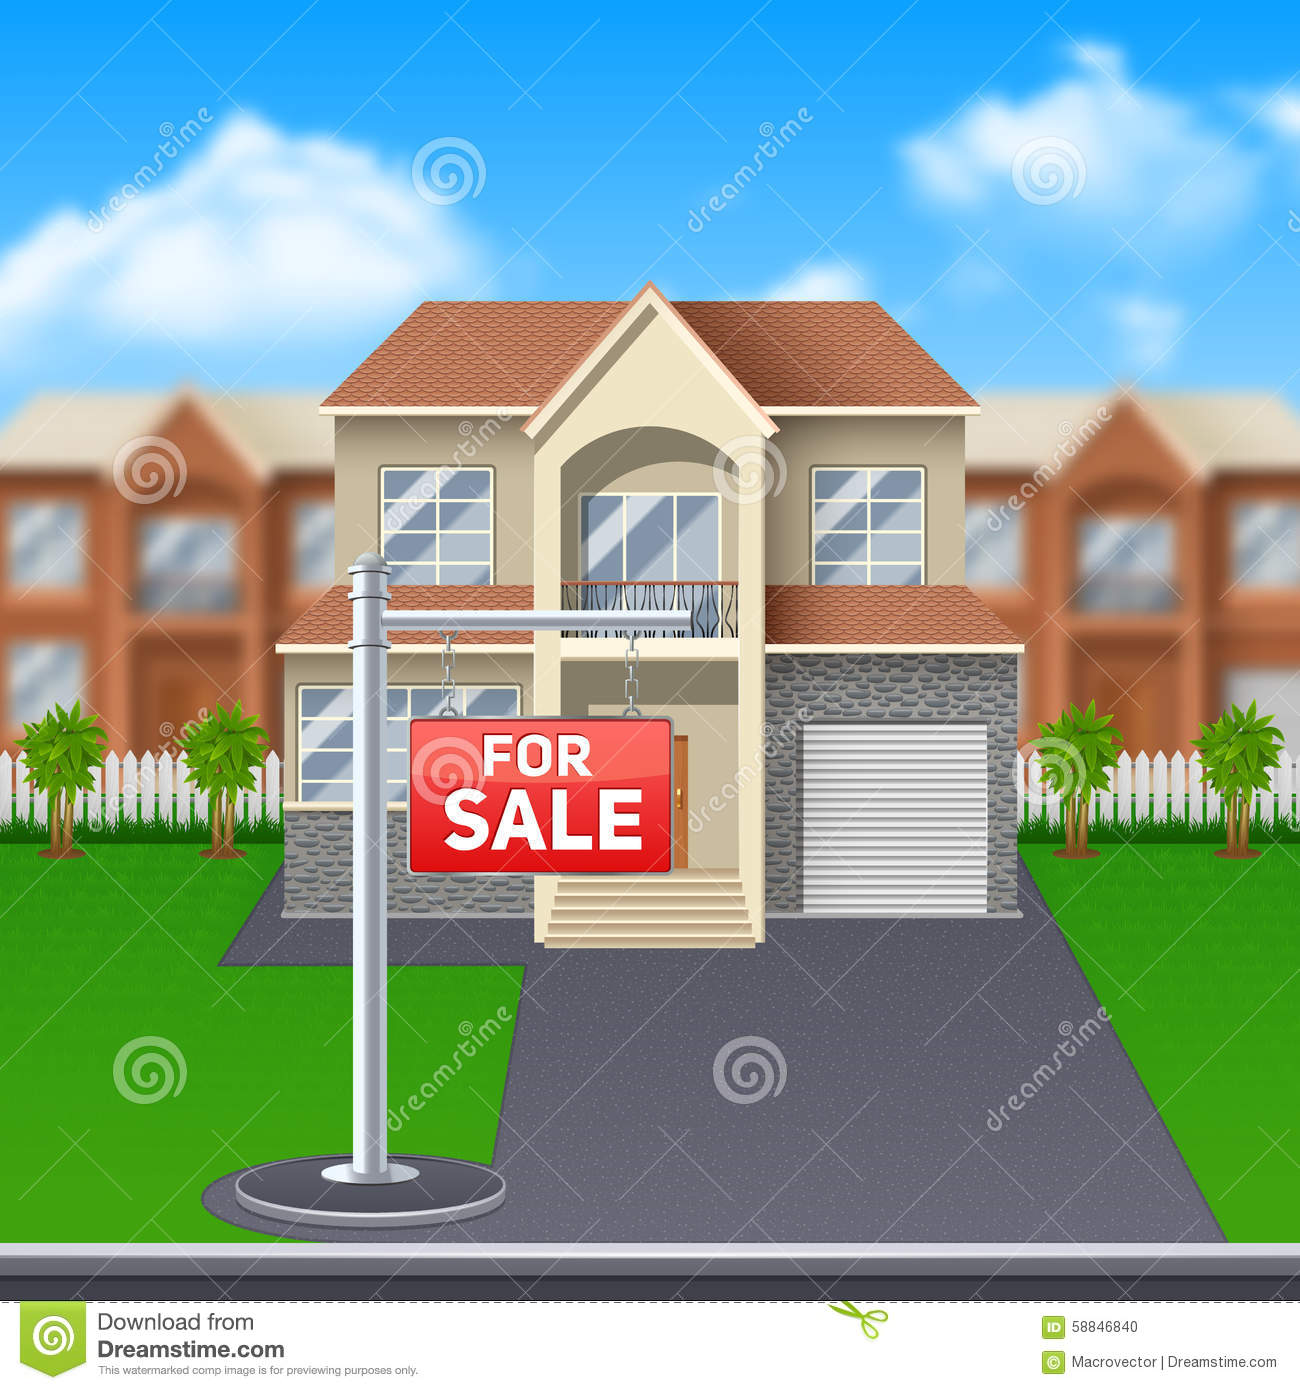 House For Sale Illustration Stock Vector Image - Big cartoon house